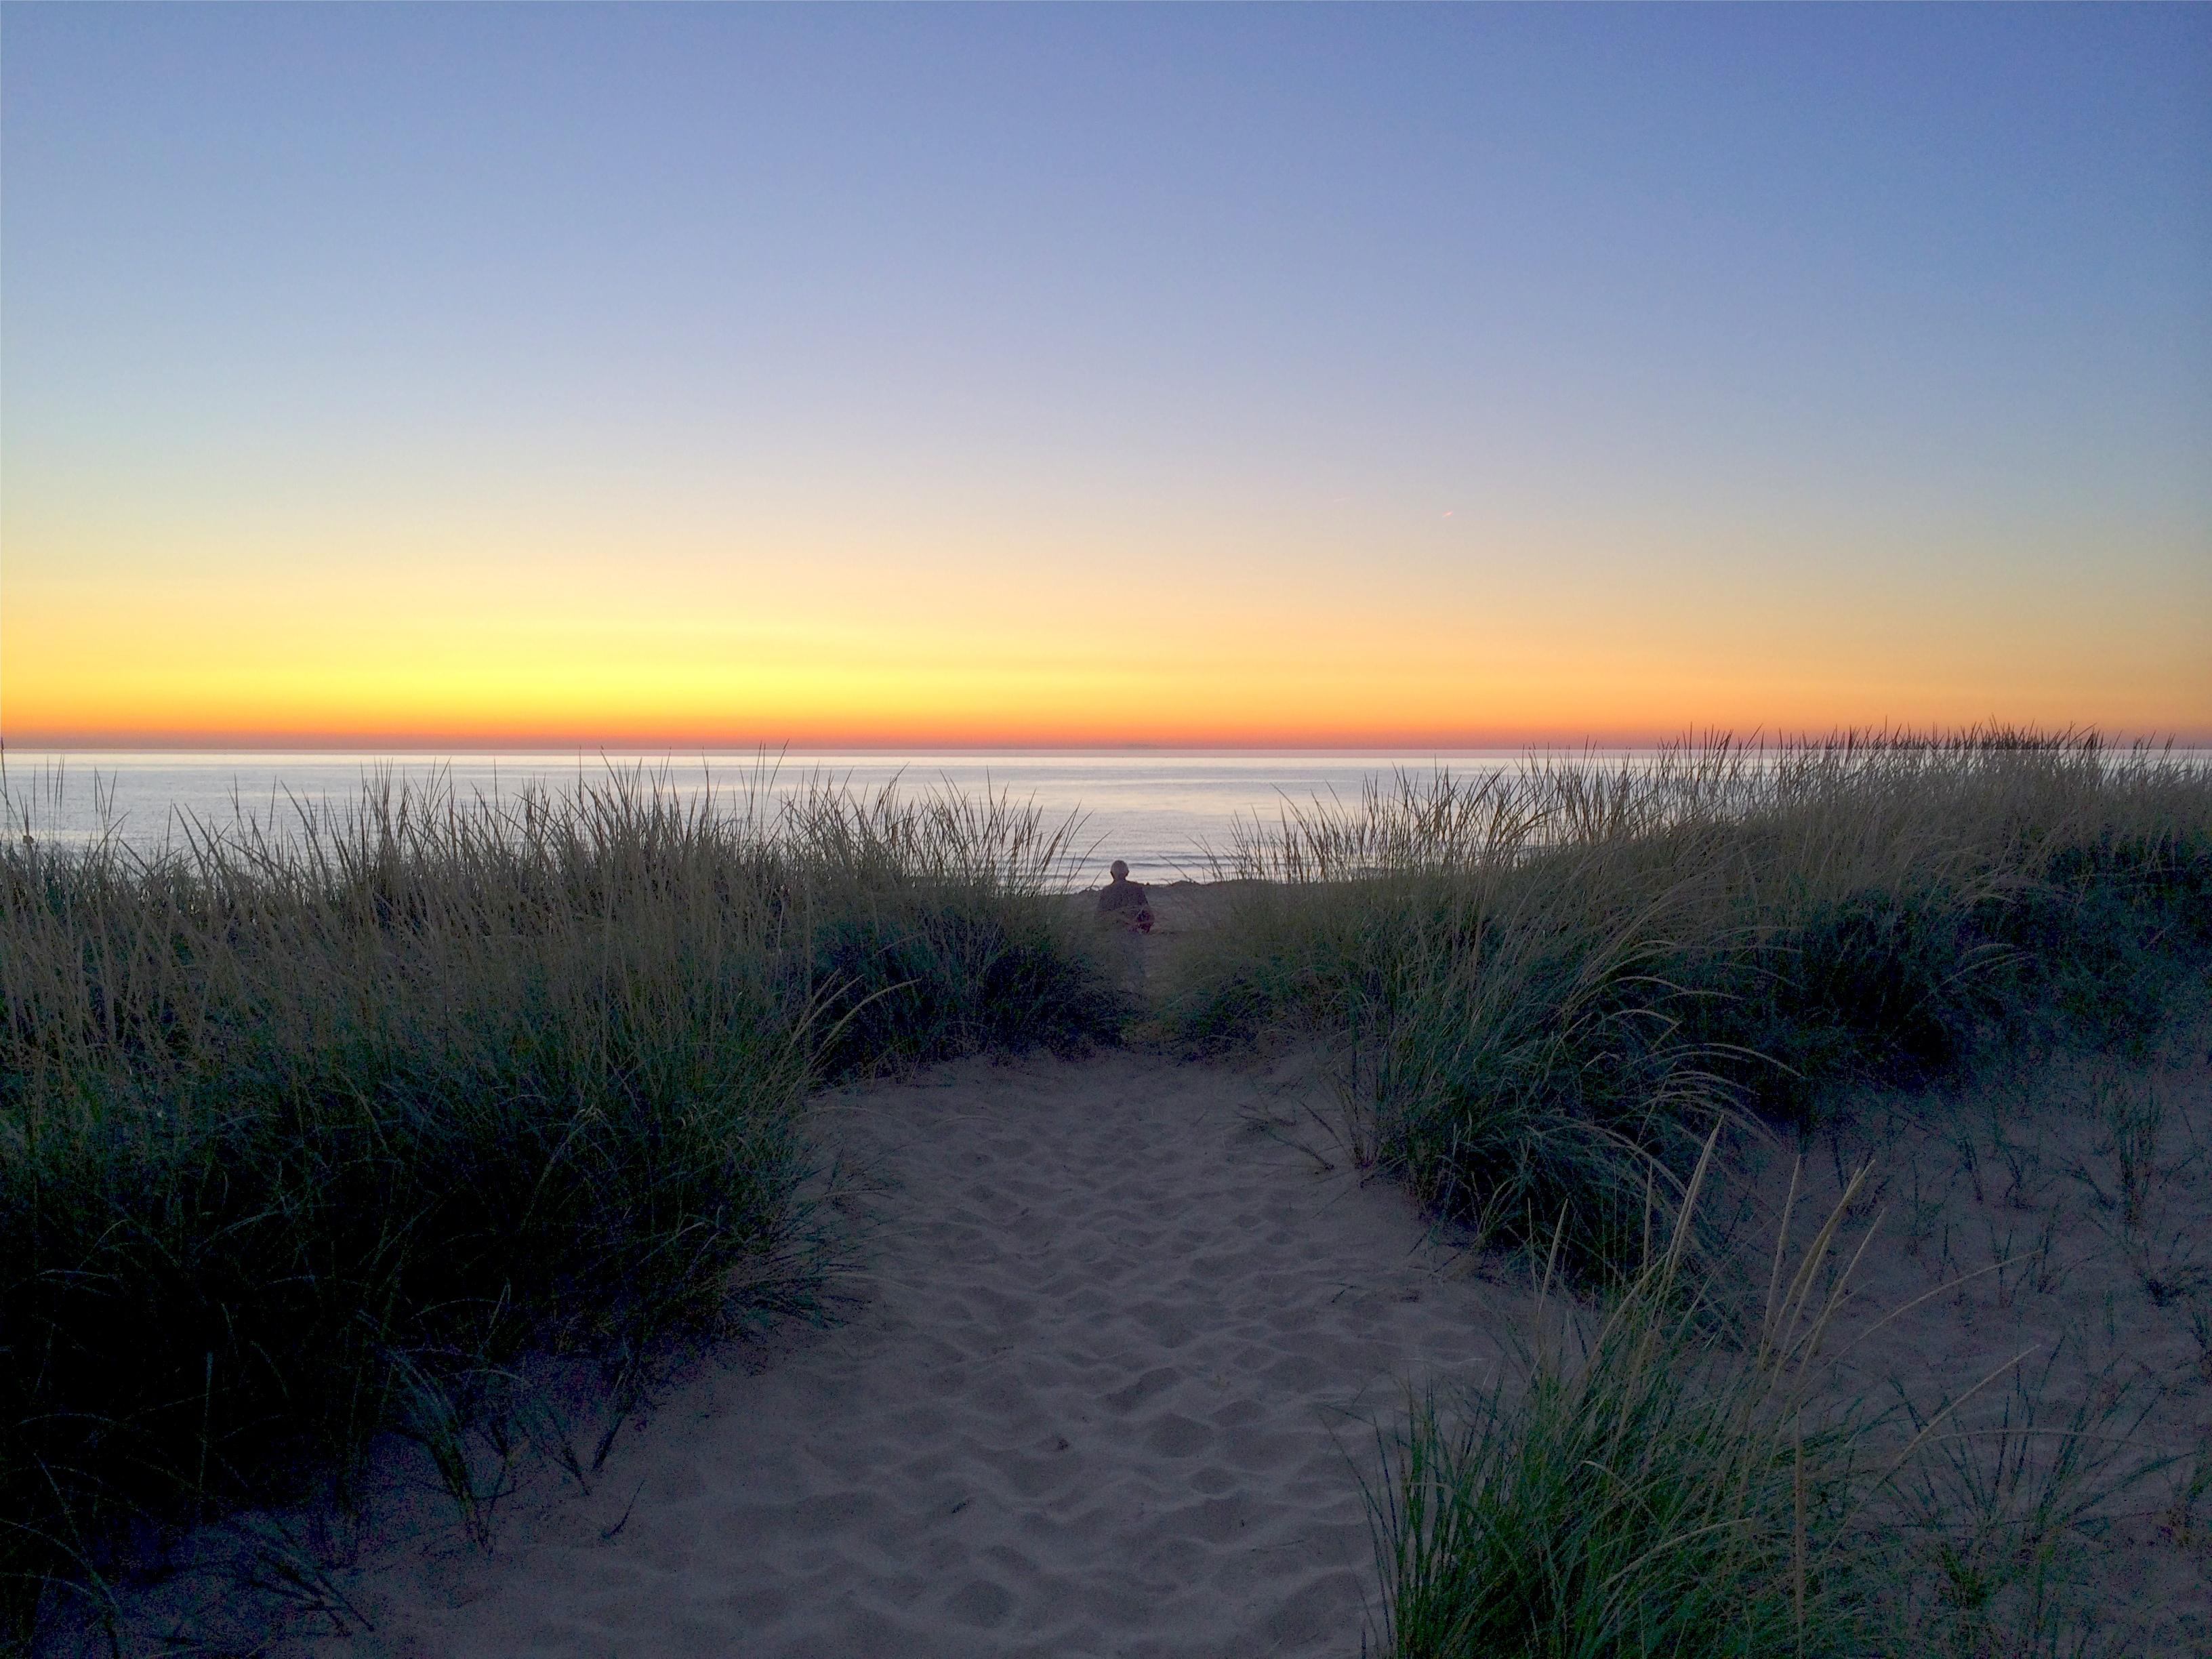 Dusk Path Through the Beachgrass